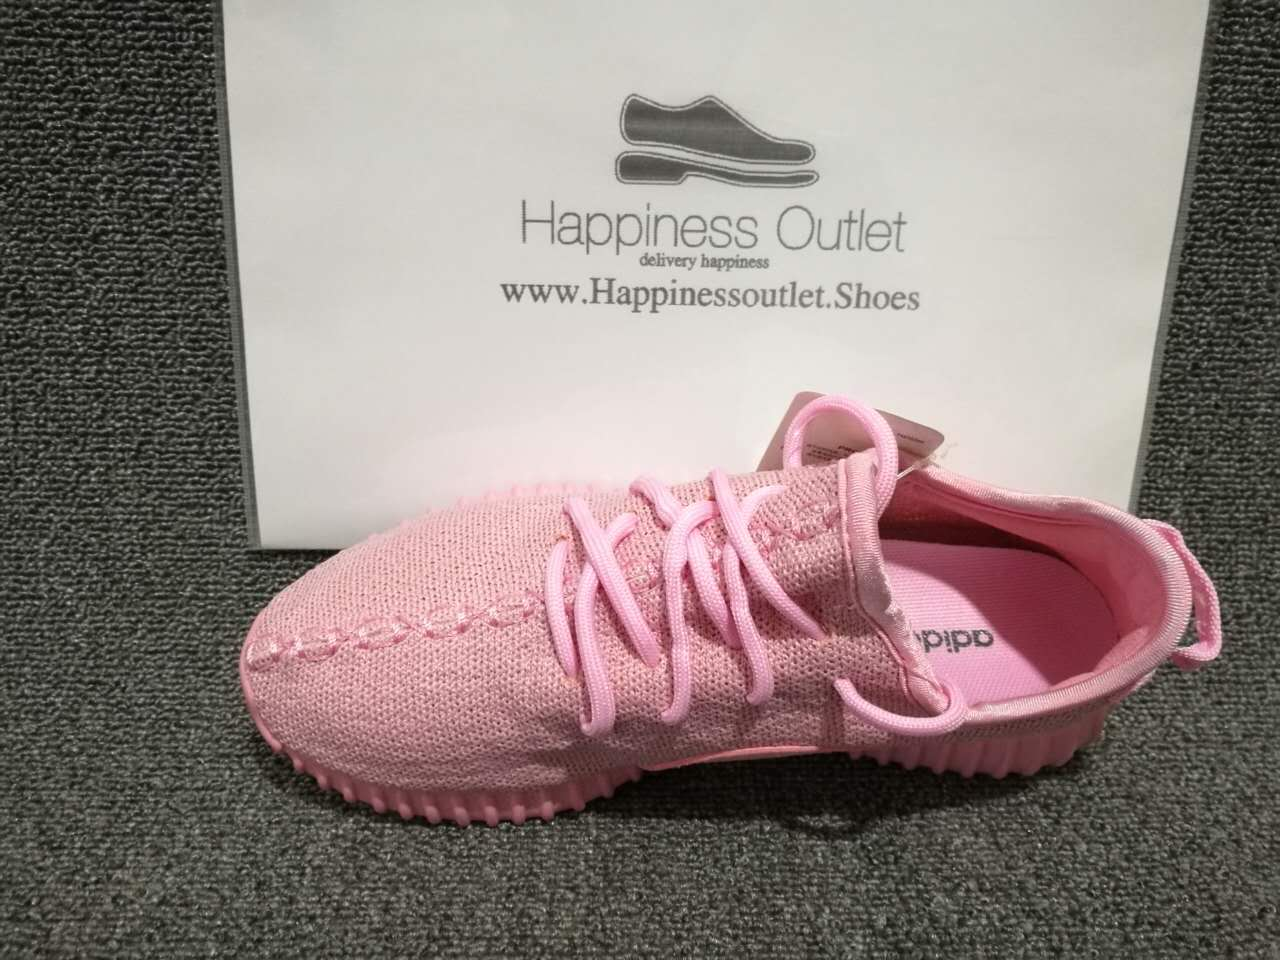 reputable site d08b9 9bc93 ... official adidas yeezy boost 350 concept pink 94577 74702